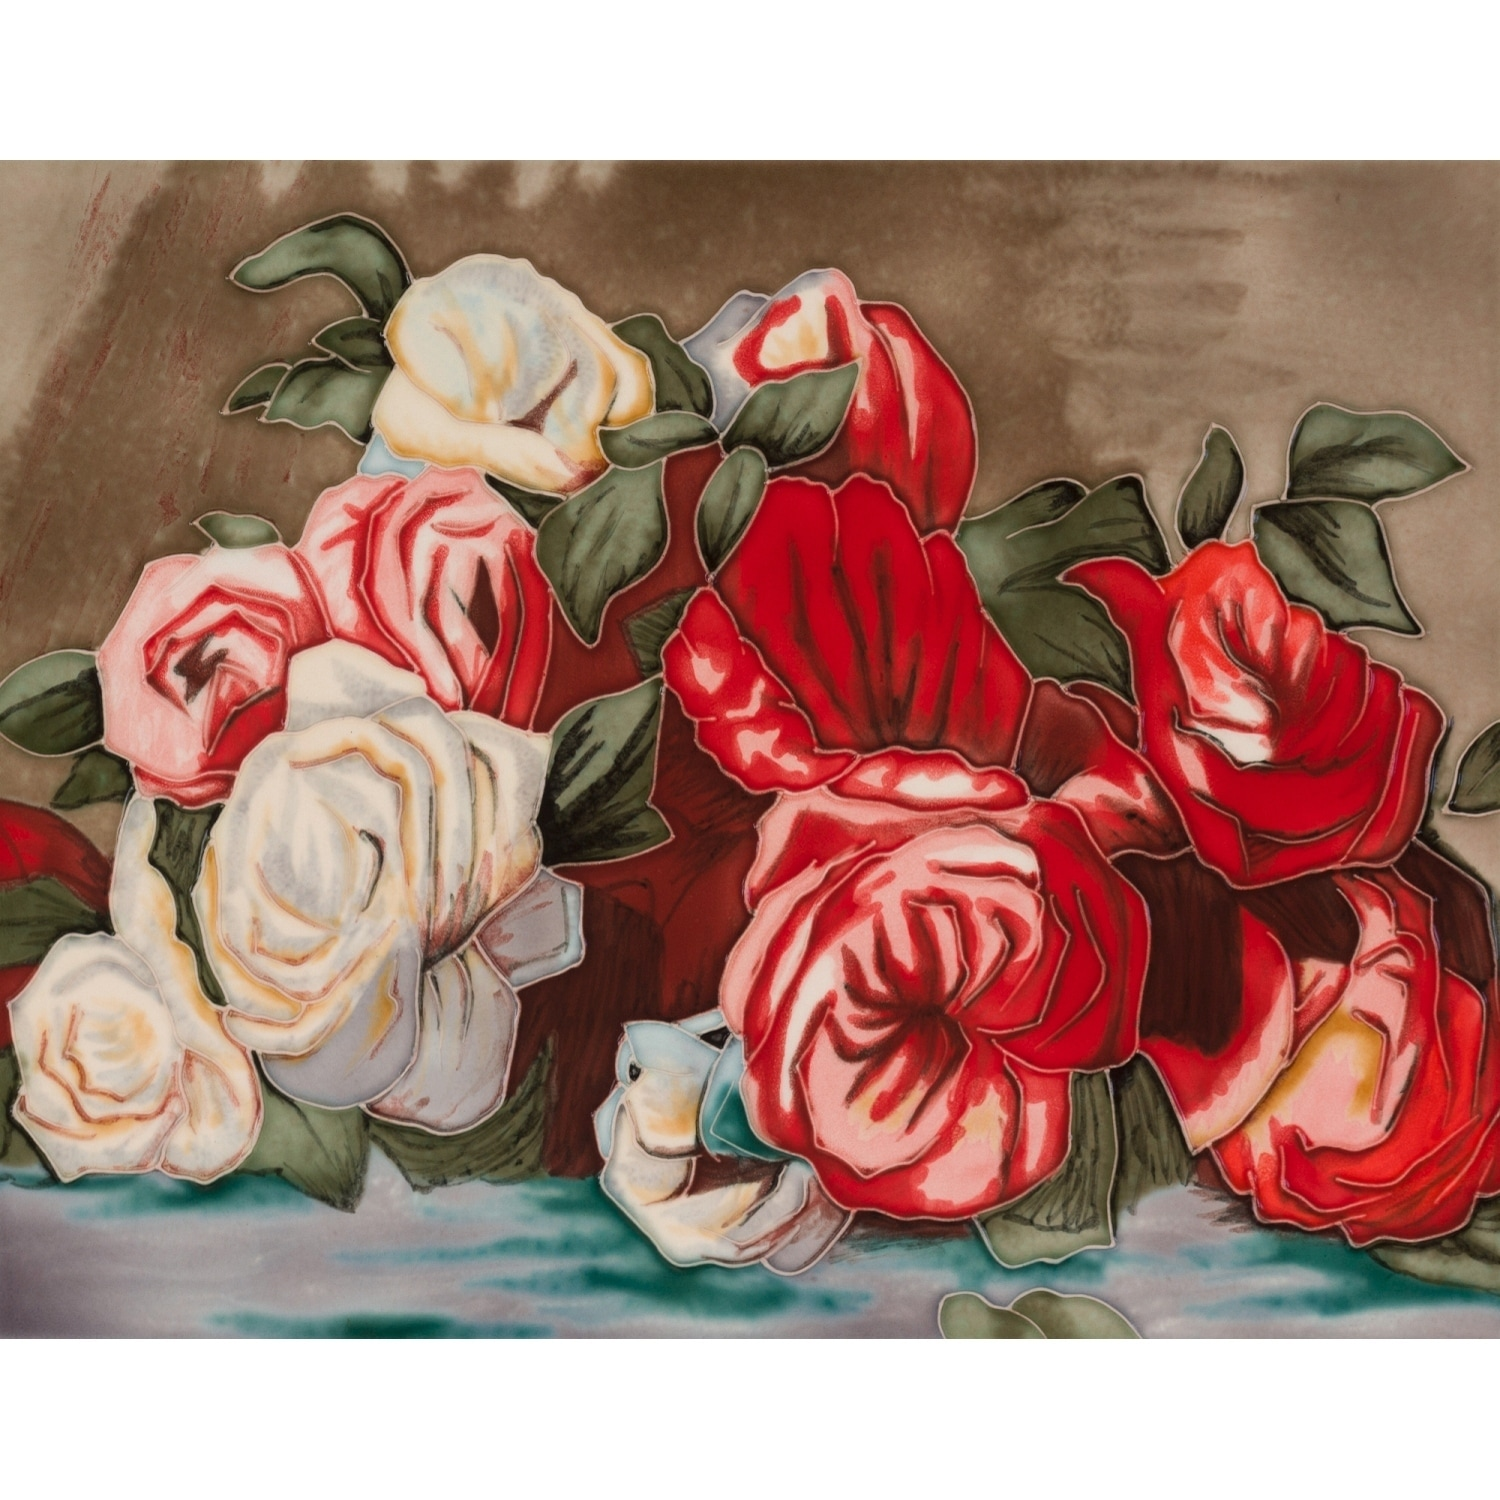 La Pastiche Pierre-Auguste Renoir 'Discarded Roses' Hand Painted Felt Backed Wall Accent Tile